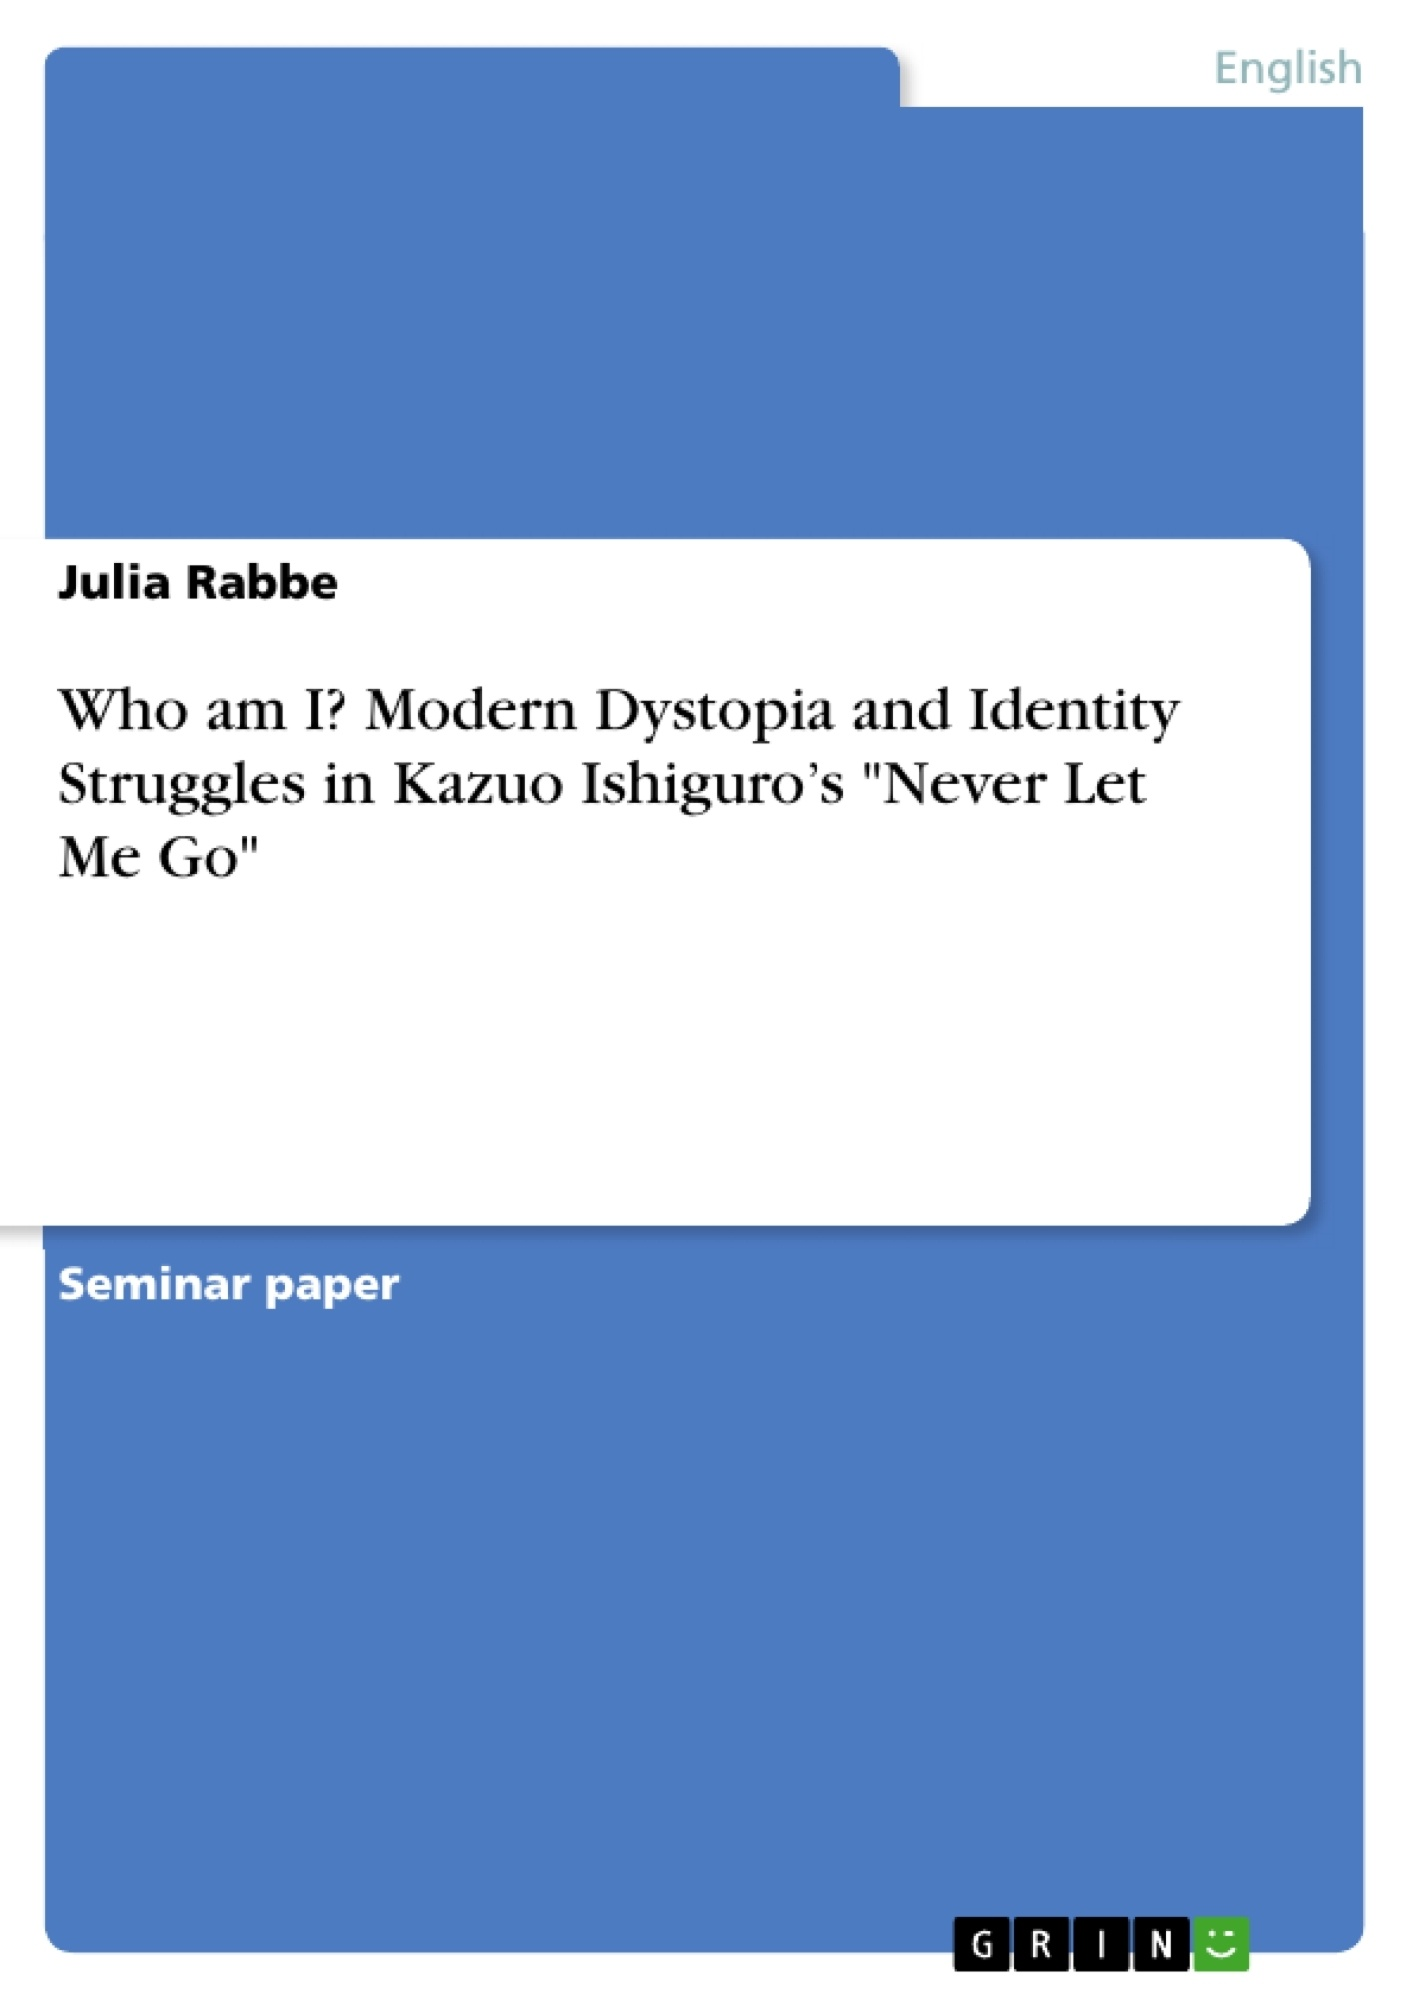 """Title: Who am I? Modern Dystopia and Identity Struggles in Kazuo Ishiguro's """"Never Let Me Go"""""""